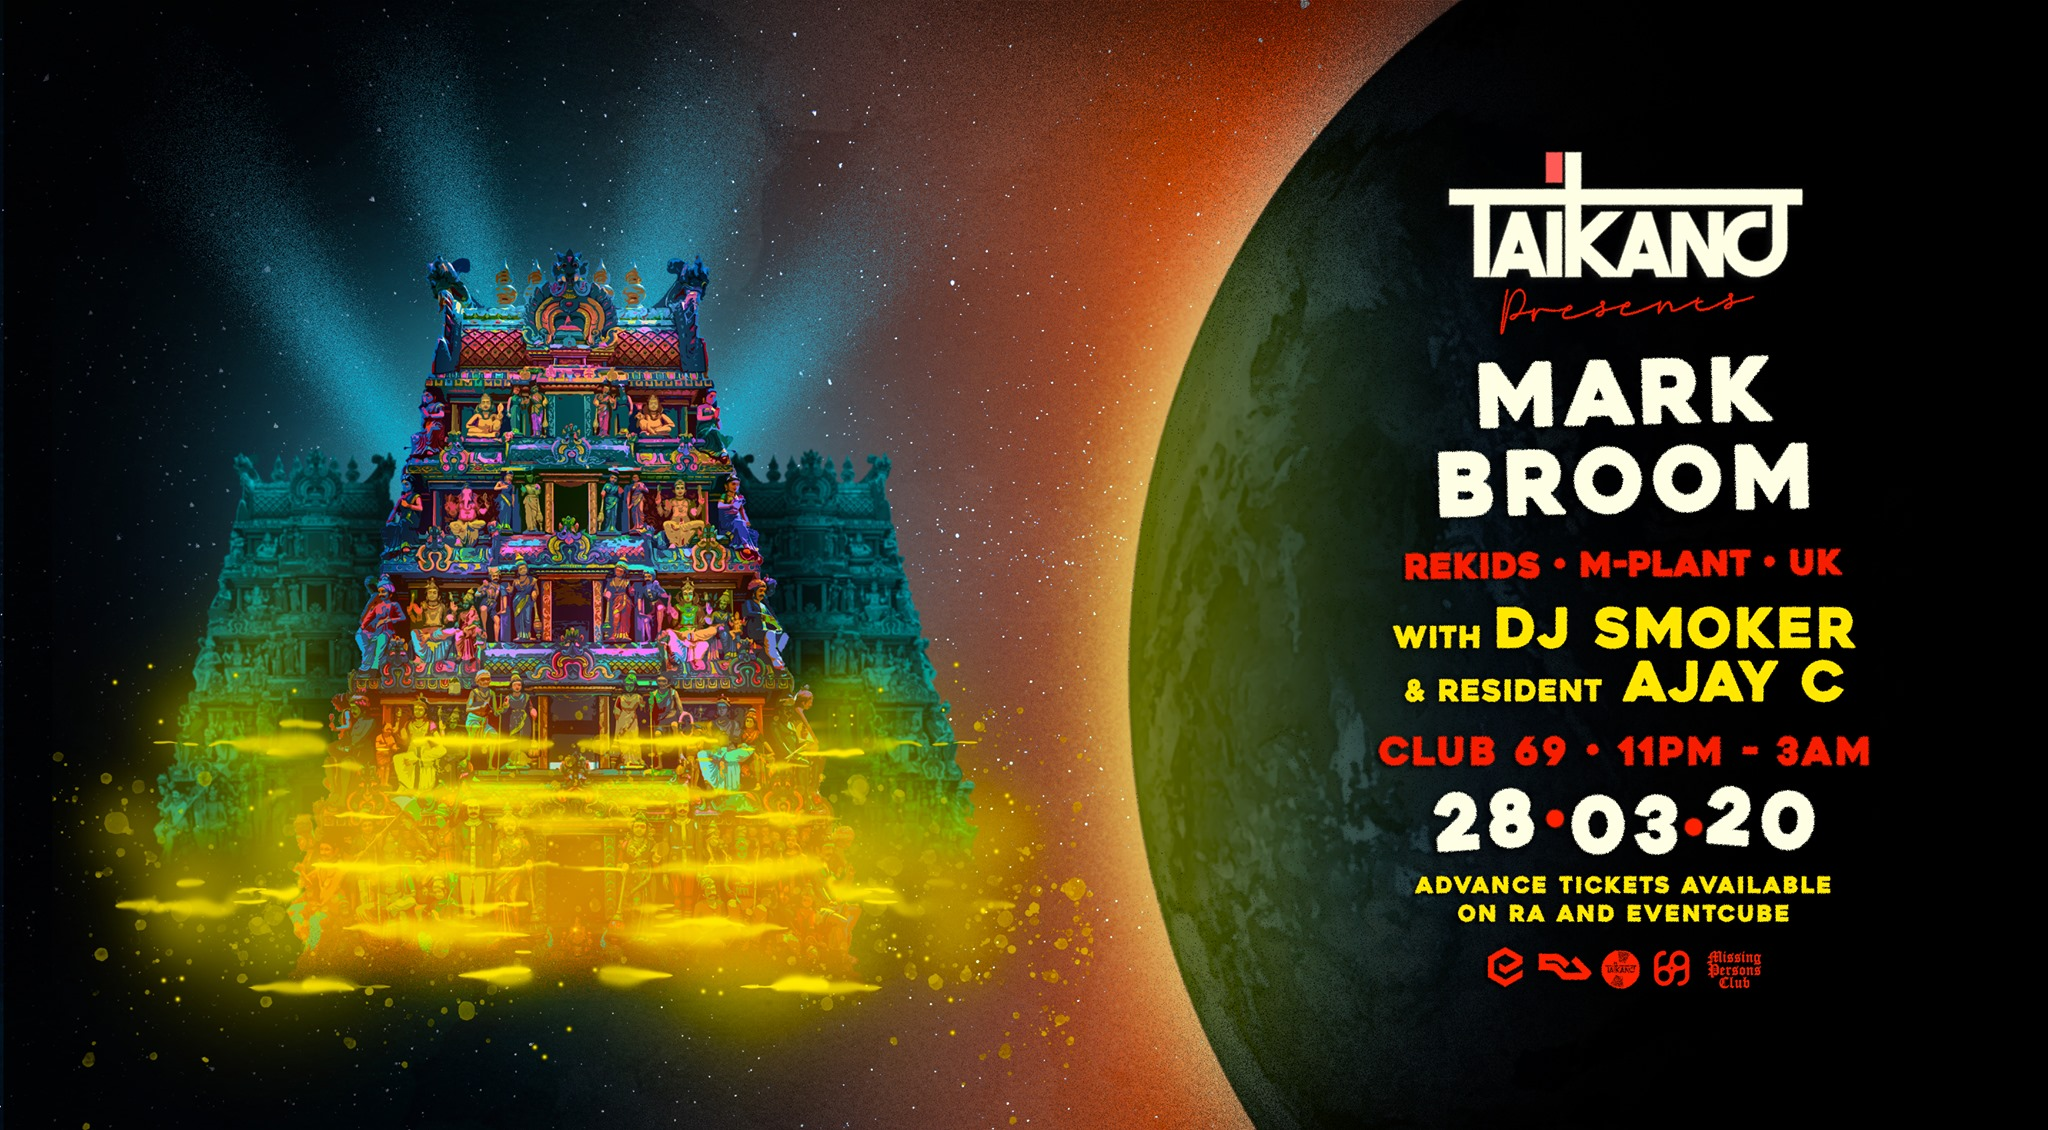 Mark Broom at Taikano presents MARK BROOM w/ DJ Smoker // AJAY C at CLUB 69